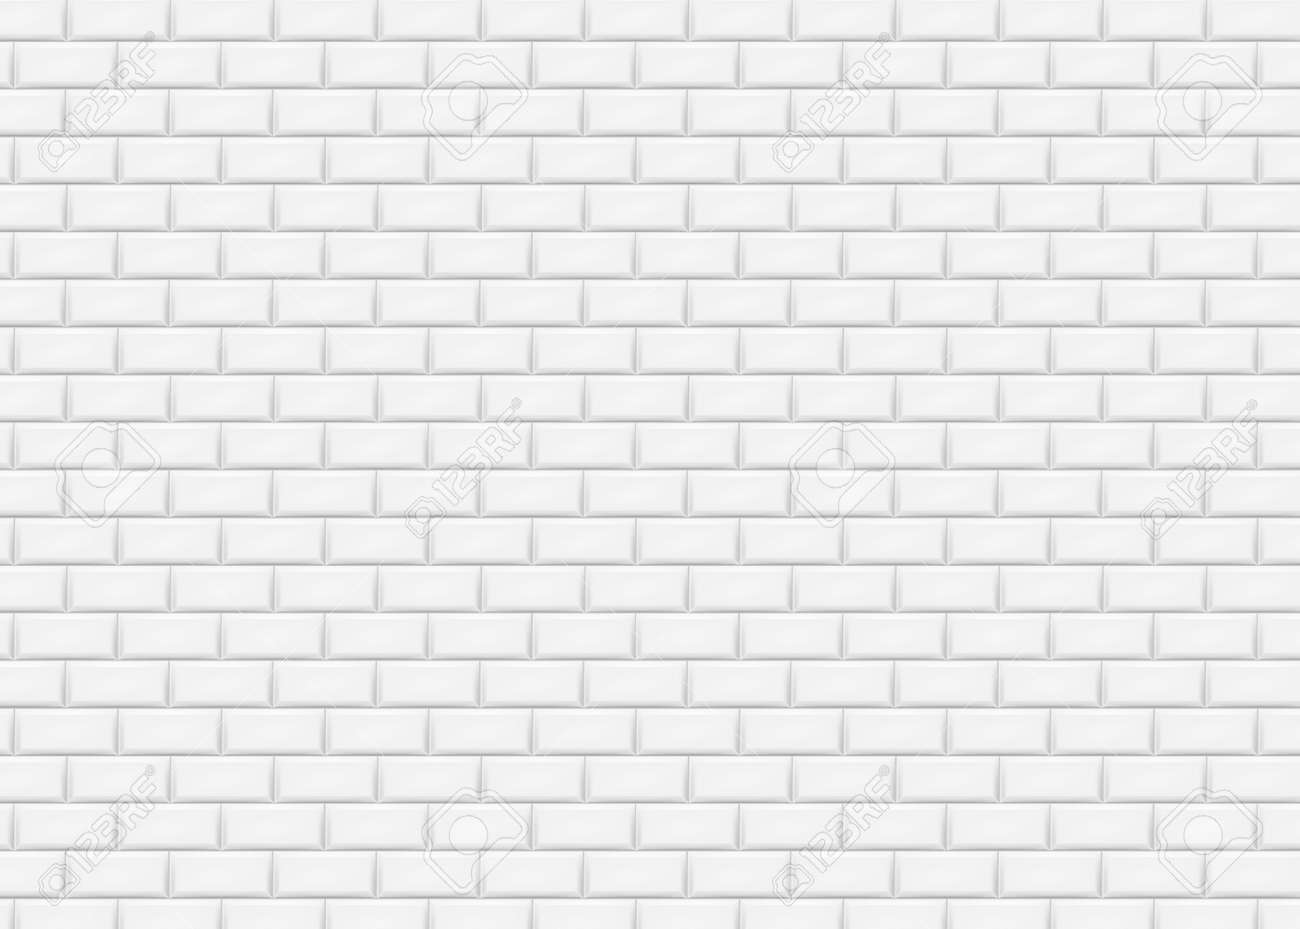 white brick wall in subway tile pattern vector illustration